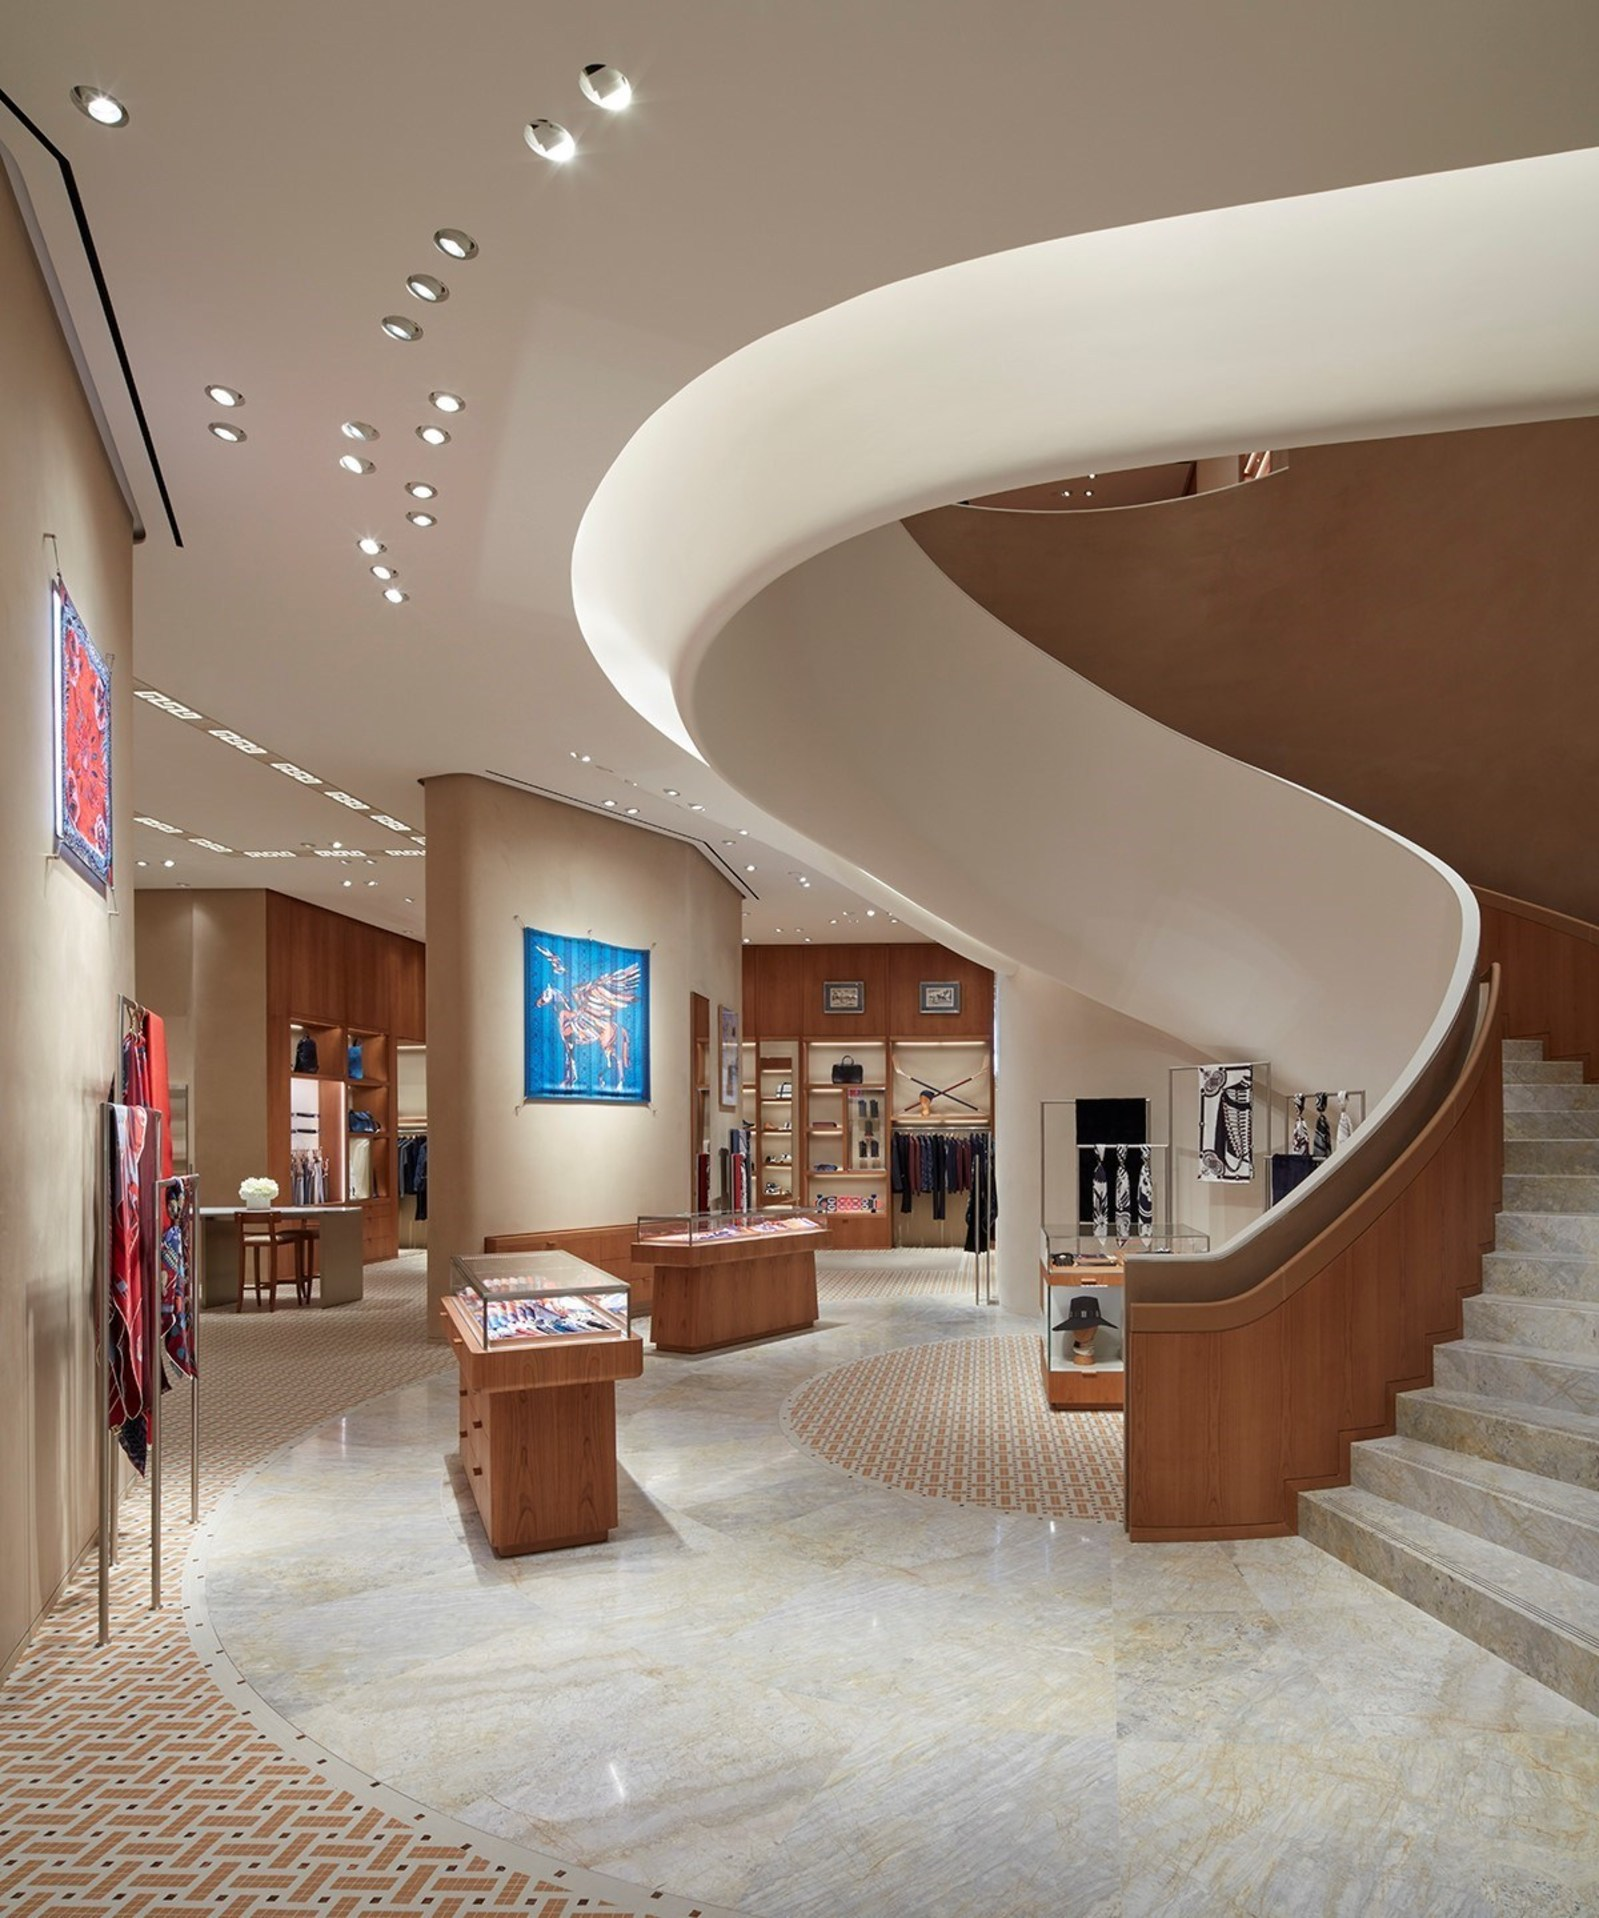 (Looking from the main entrance into the new space. Photo: Hermès/Evan Dion)